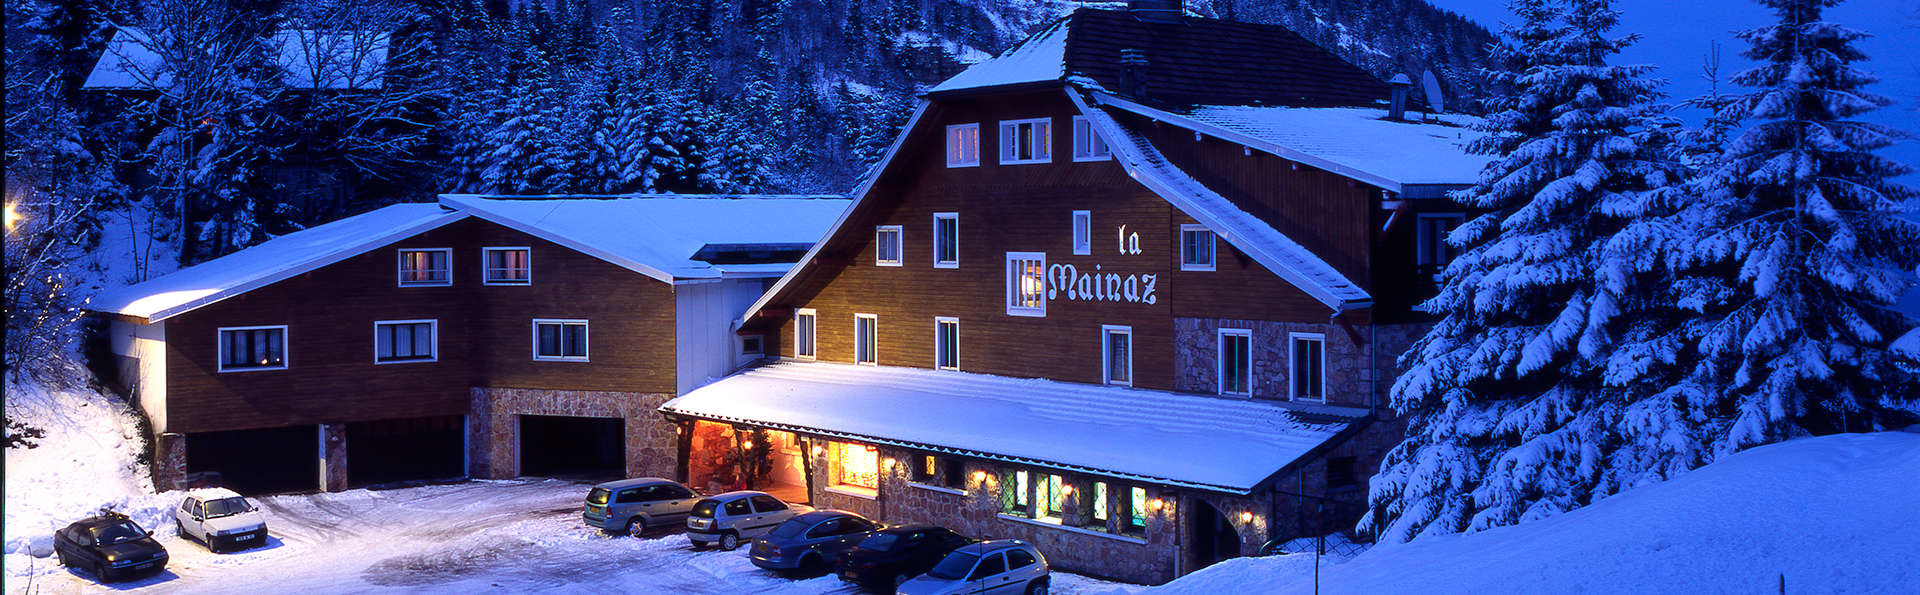 Relais Du Silence La Mainaz Hotel Restaurant et Resort - edit_front_winter1.jpg